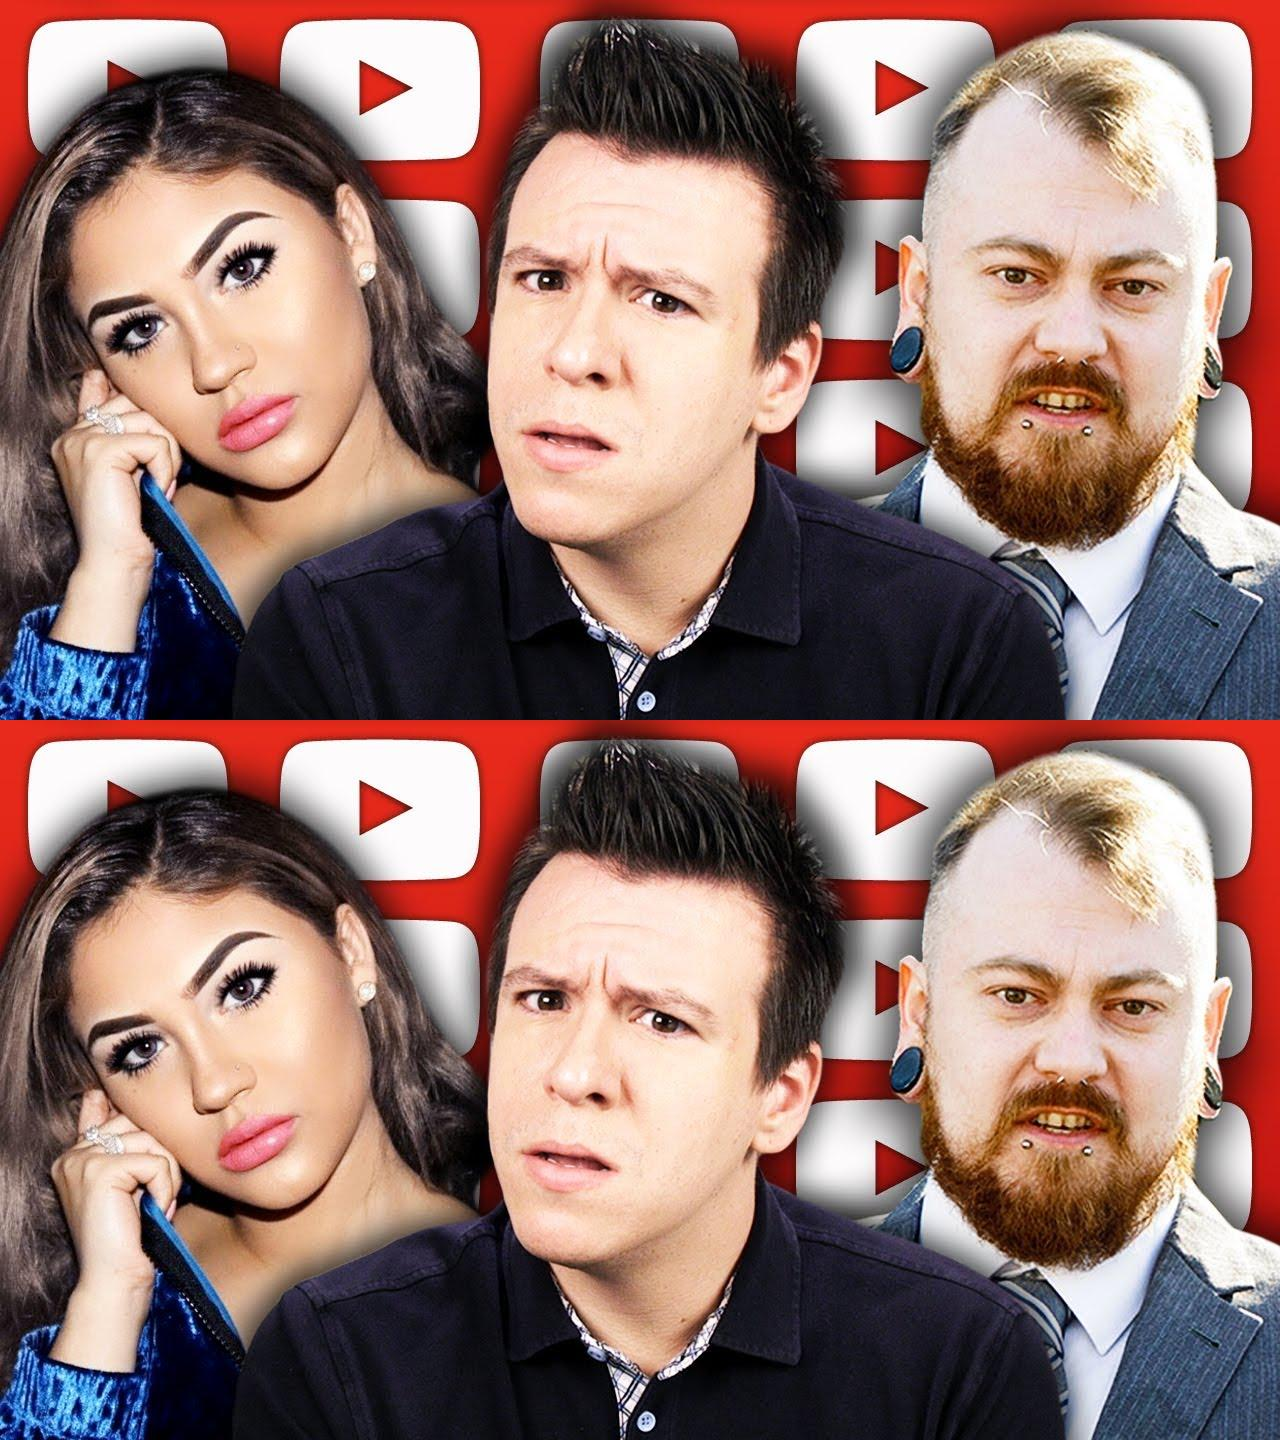 The Philip Defranco Show Disgusting Ariadna Juarez 13 Year Old Scandal Count Dankula Appeal More Tv Episode 2018 Imdb Join facebook to connect with ariadna juarez and others you may know. ariadna juarez 13 year old scandal